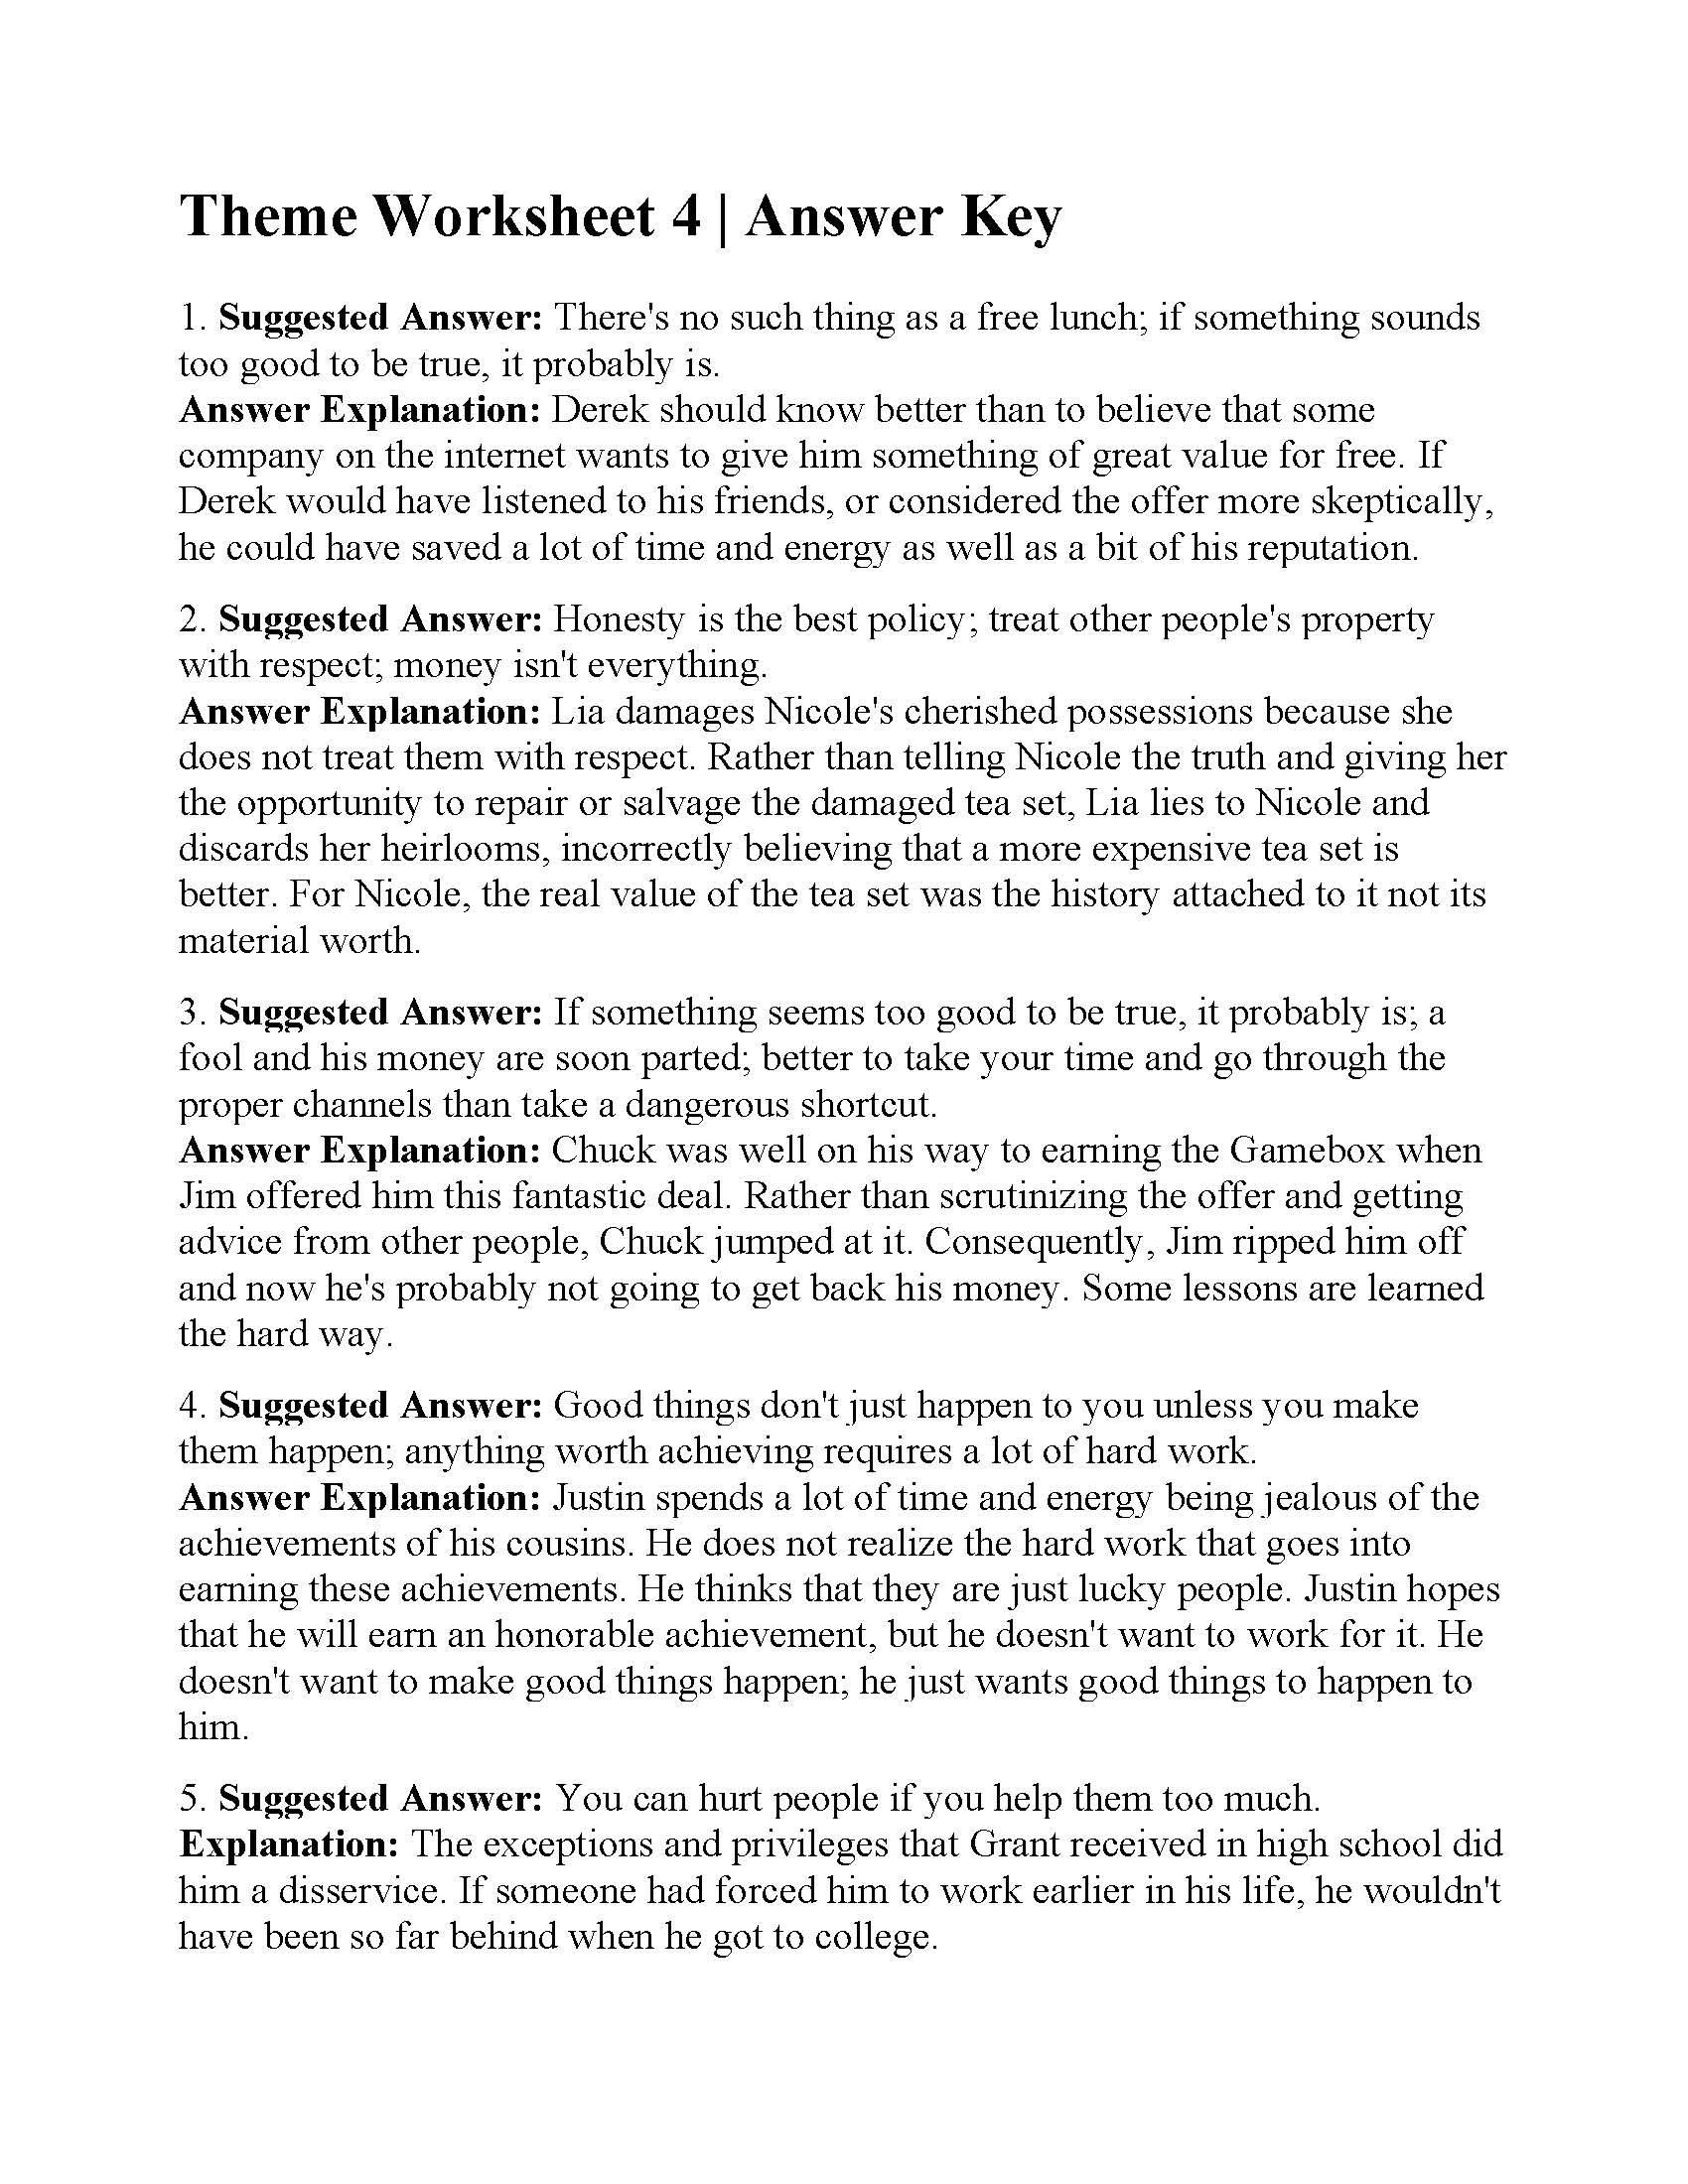 Theme Worksheets 5th Grade This is the Answer Key for the theme Worksheet 4